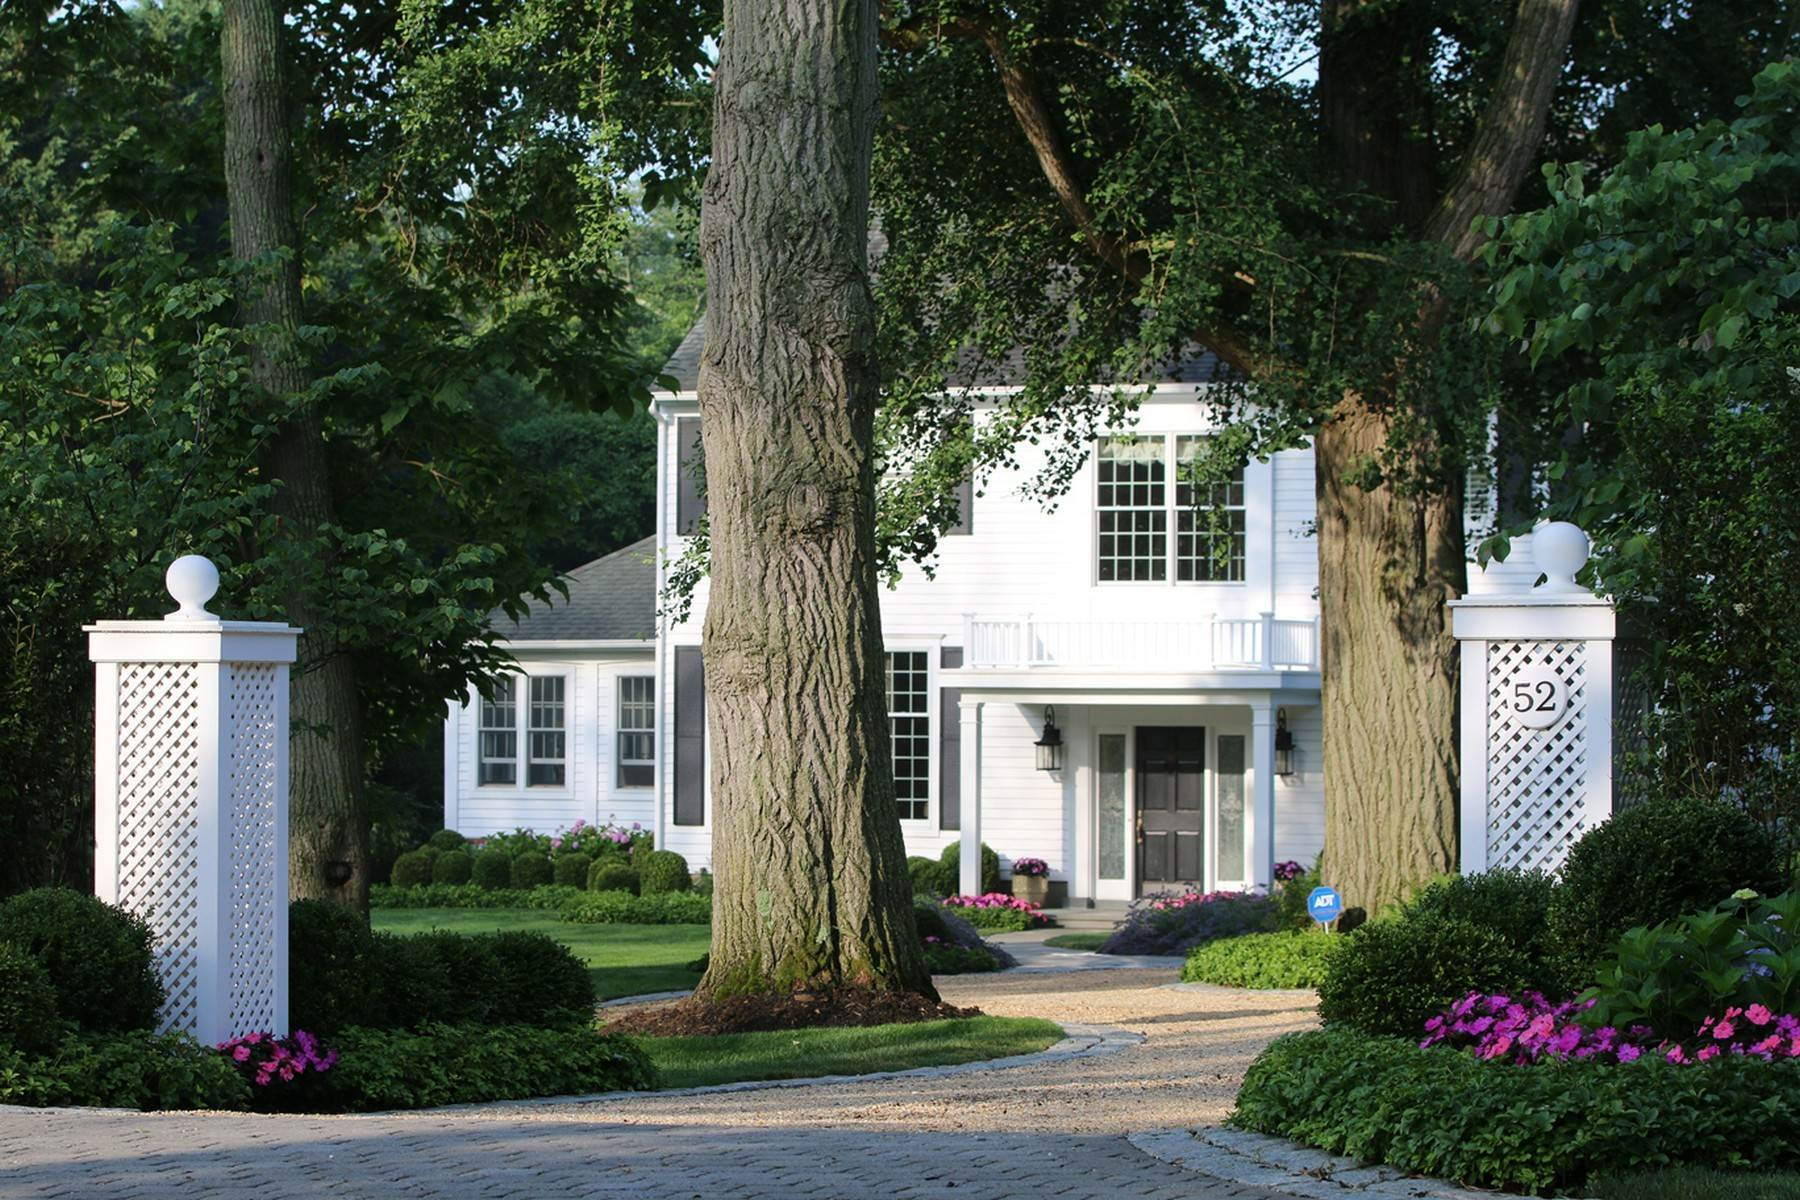 Single Family Homes for Sale at Classic Updated Colonial 52 Bellevue Avenue Rumson, New Jersey 07760 United States